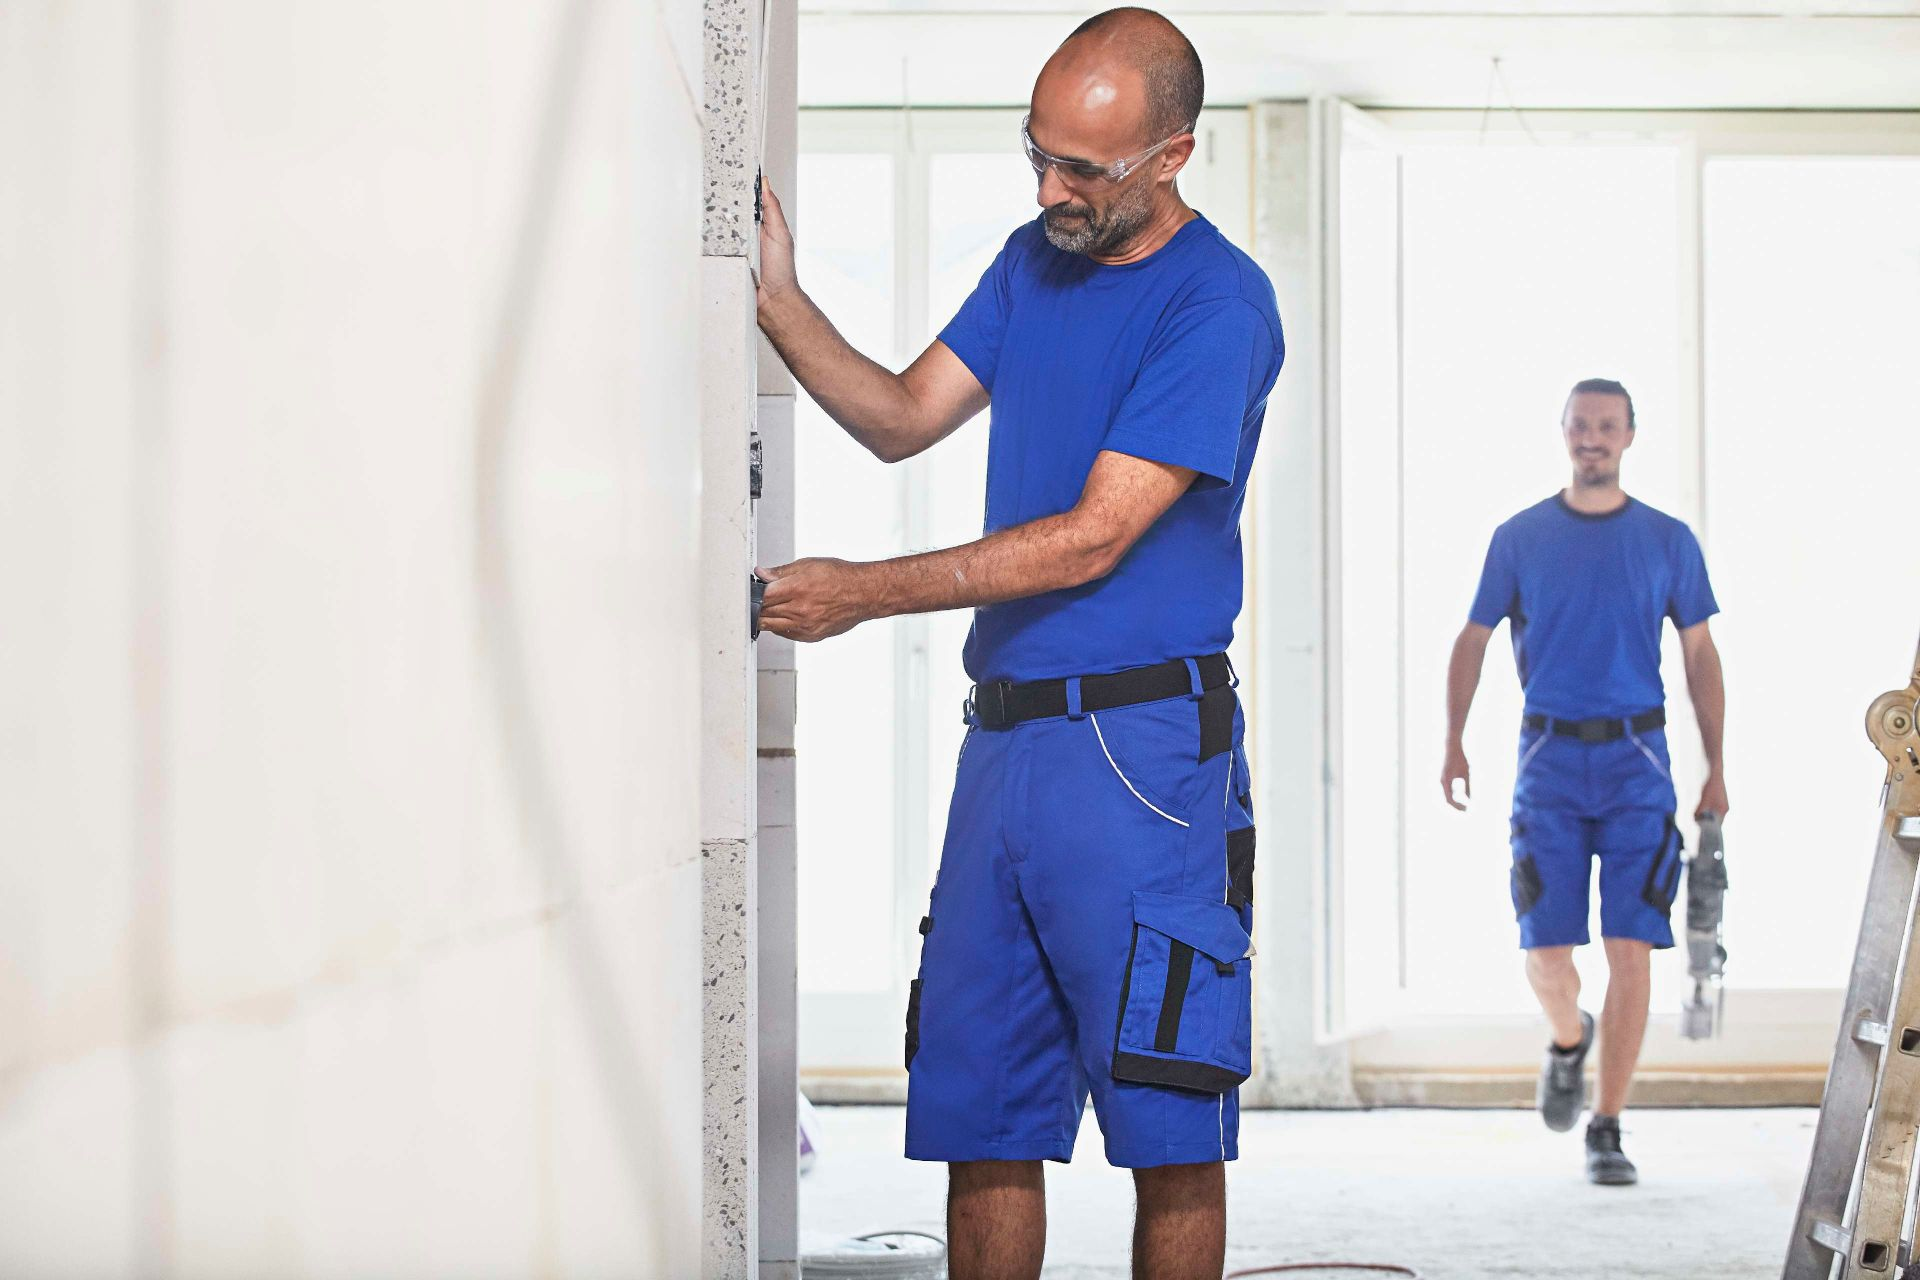 Electricians: Workwear and health and safety items | MEWA